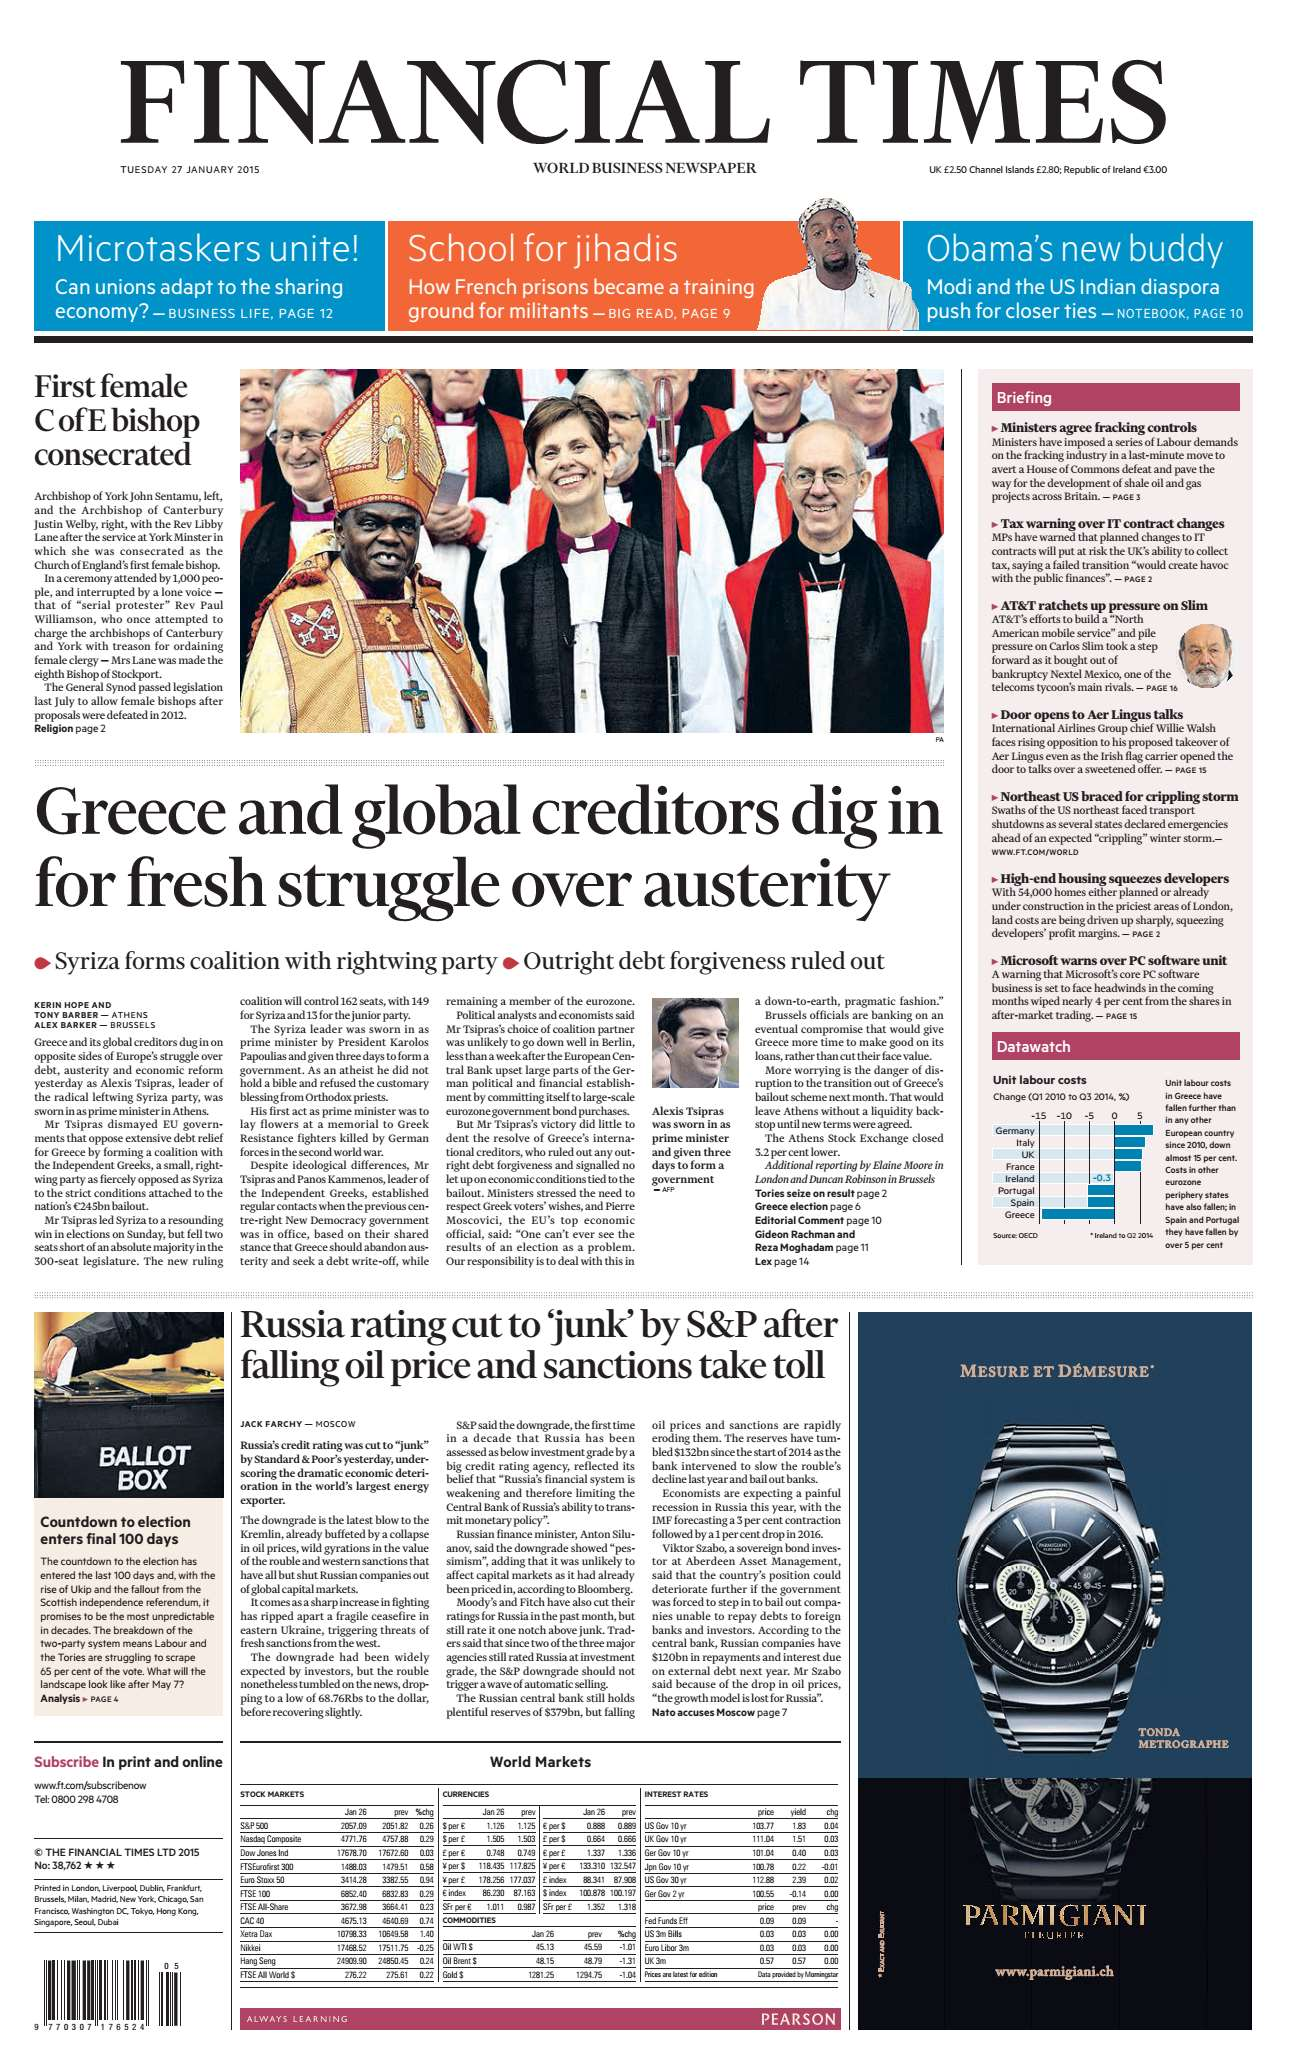 Financial Times UK January 27, 2015 free download